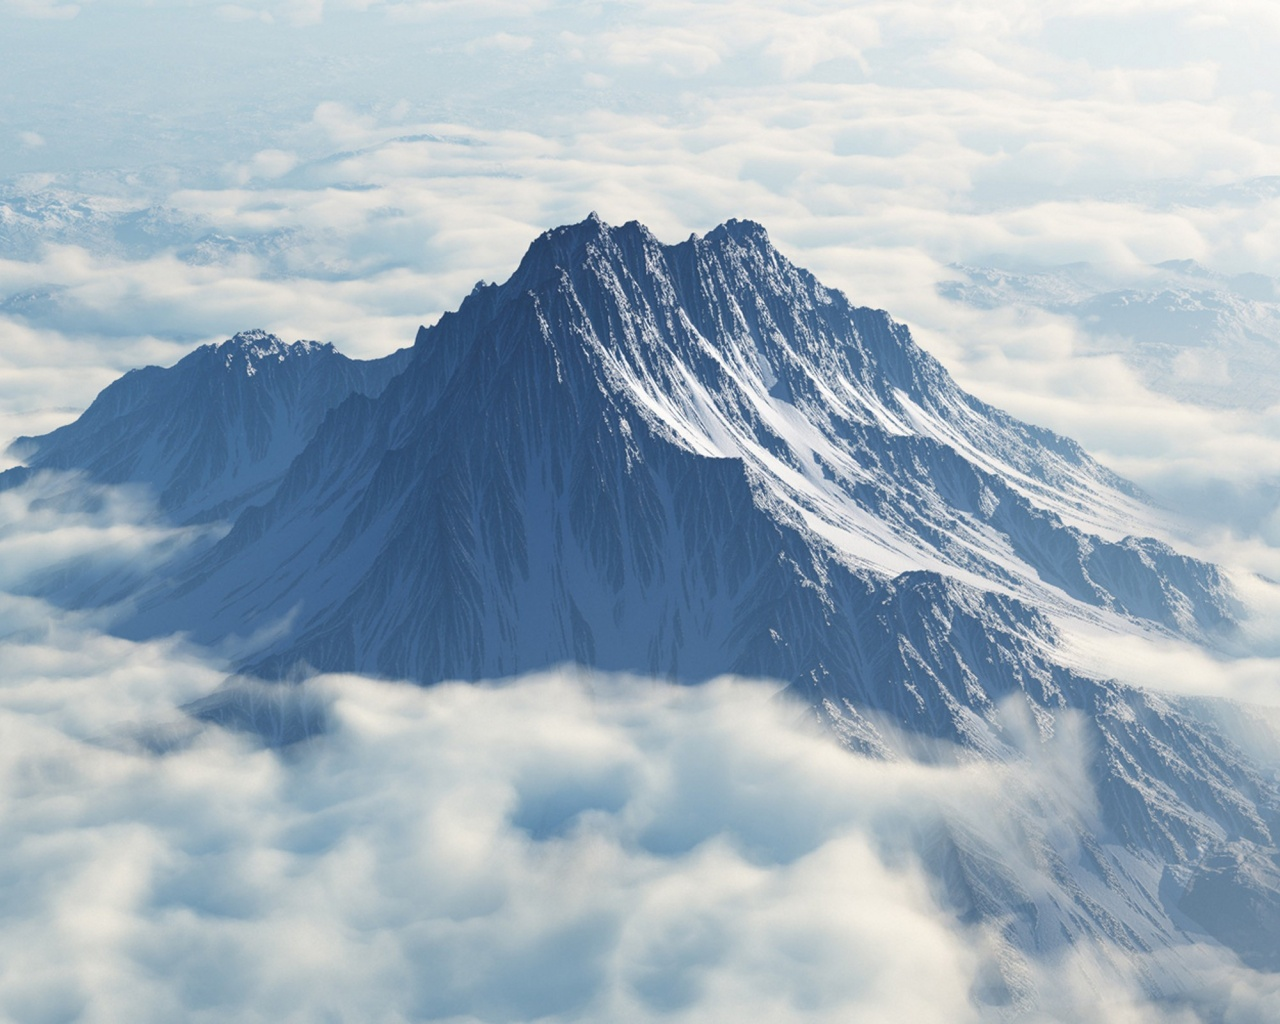 1280x1024 Mount Olympus Aerial View desktop PC and Mac wallpaper 1280x1024